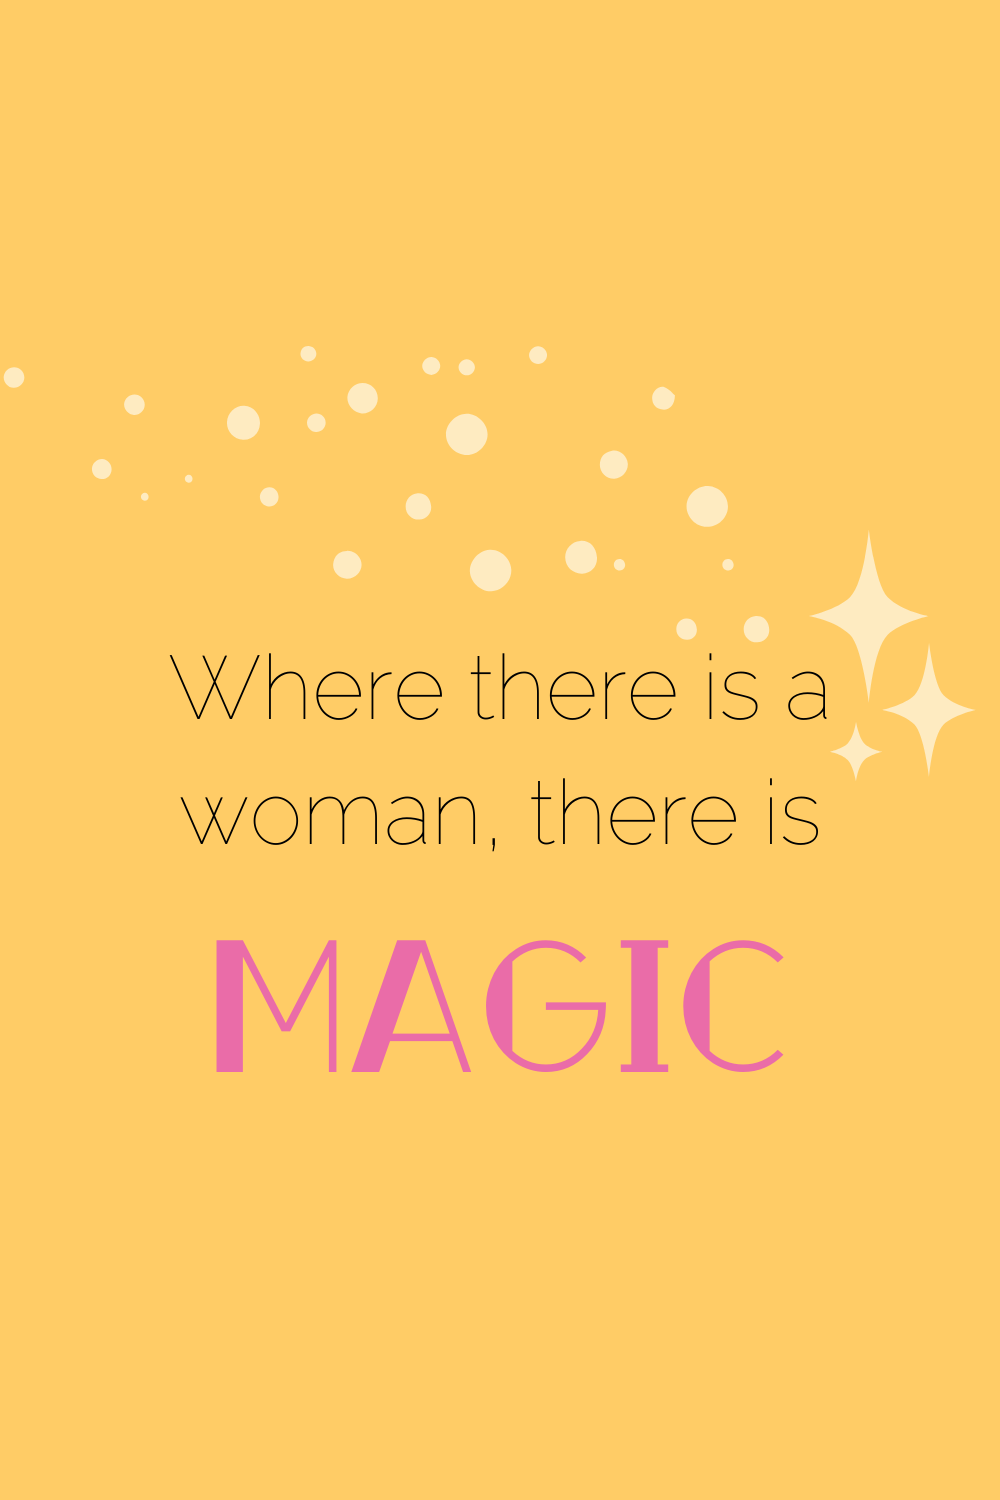 Instagram quotes For National Women's Day